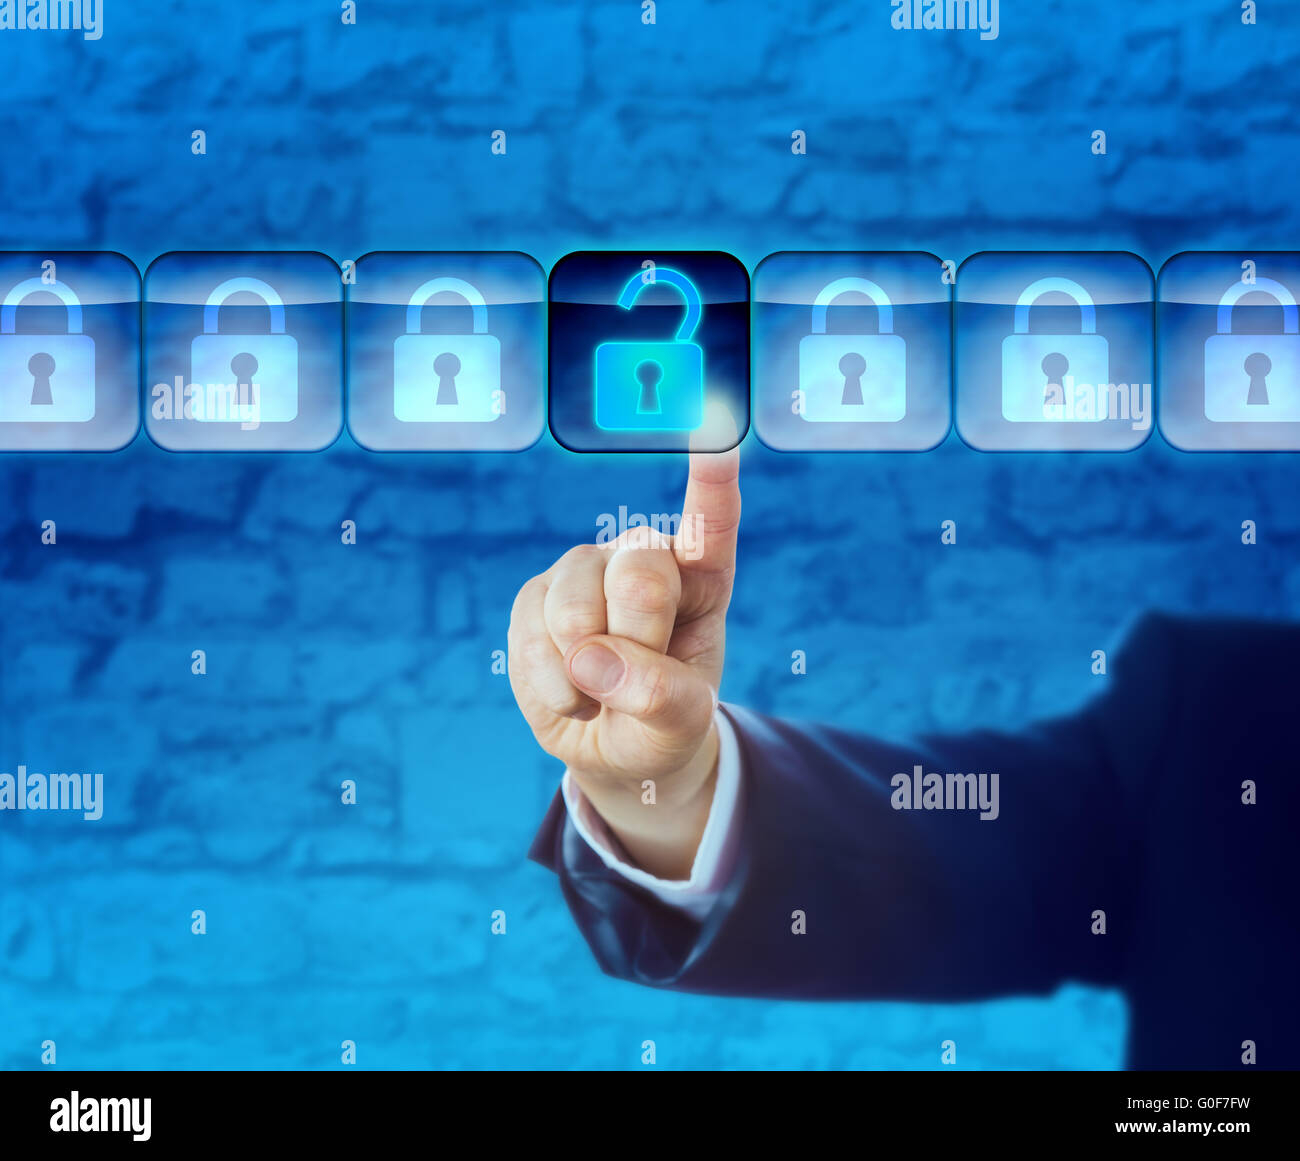 Unlocking An Information Packet In A Data Stream - Stock Image